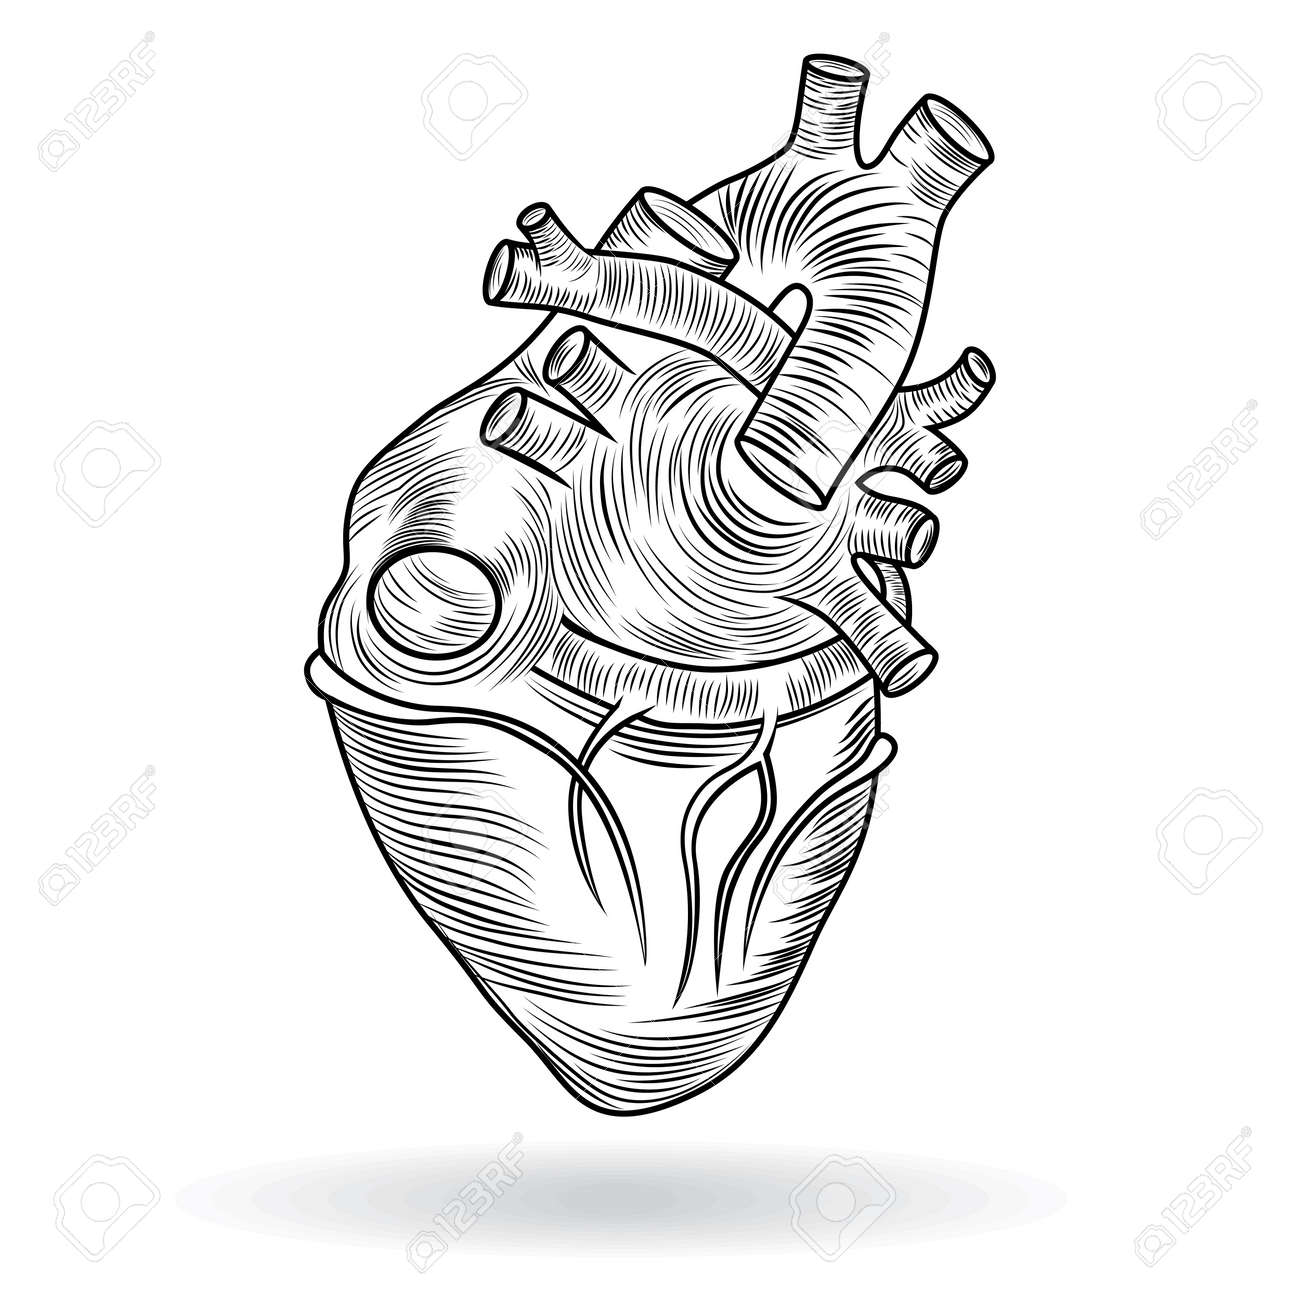 Heart Human Body Anatomy Sketch Isolated On White Background